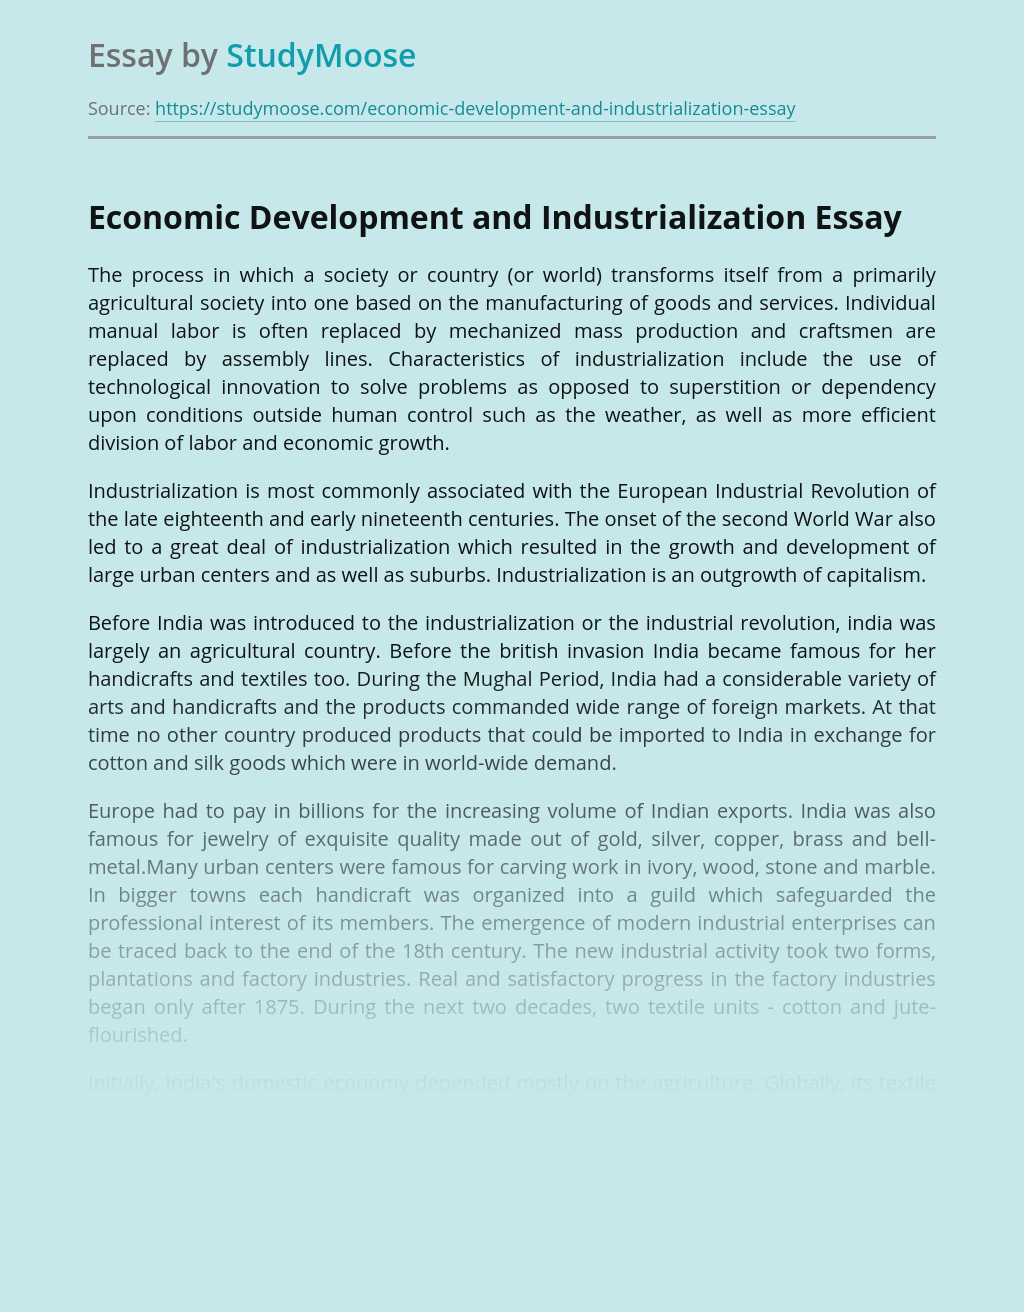 Economic Development and Industrialization